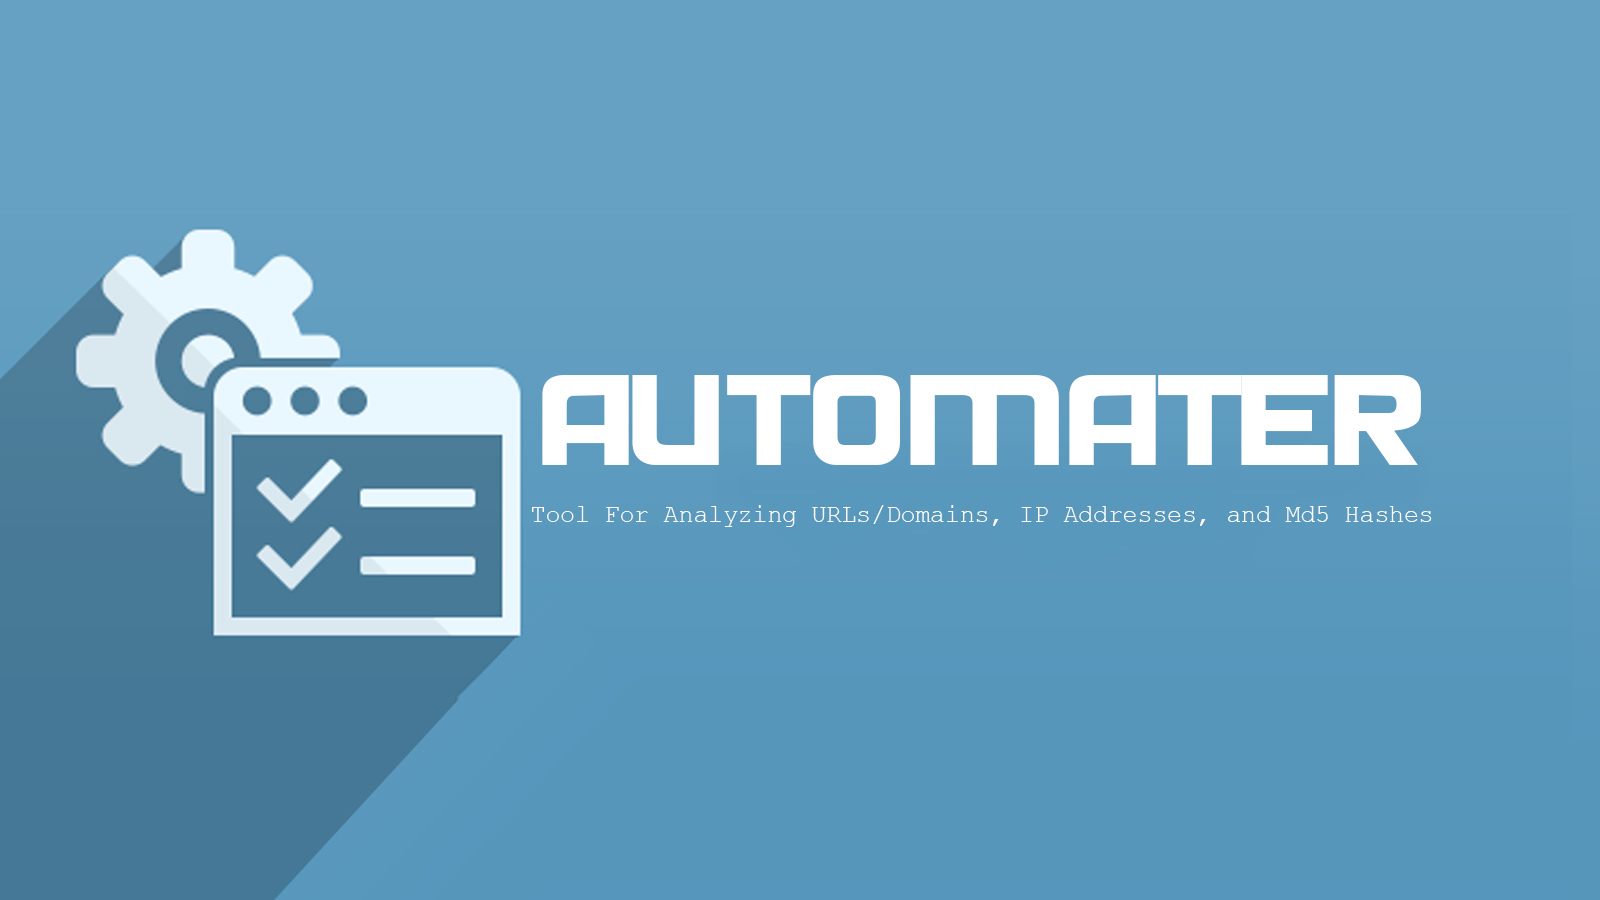 Automater - Tool For Analyzing URLs/Domains, IP Addresses, and Md5 Hashes